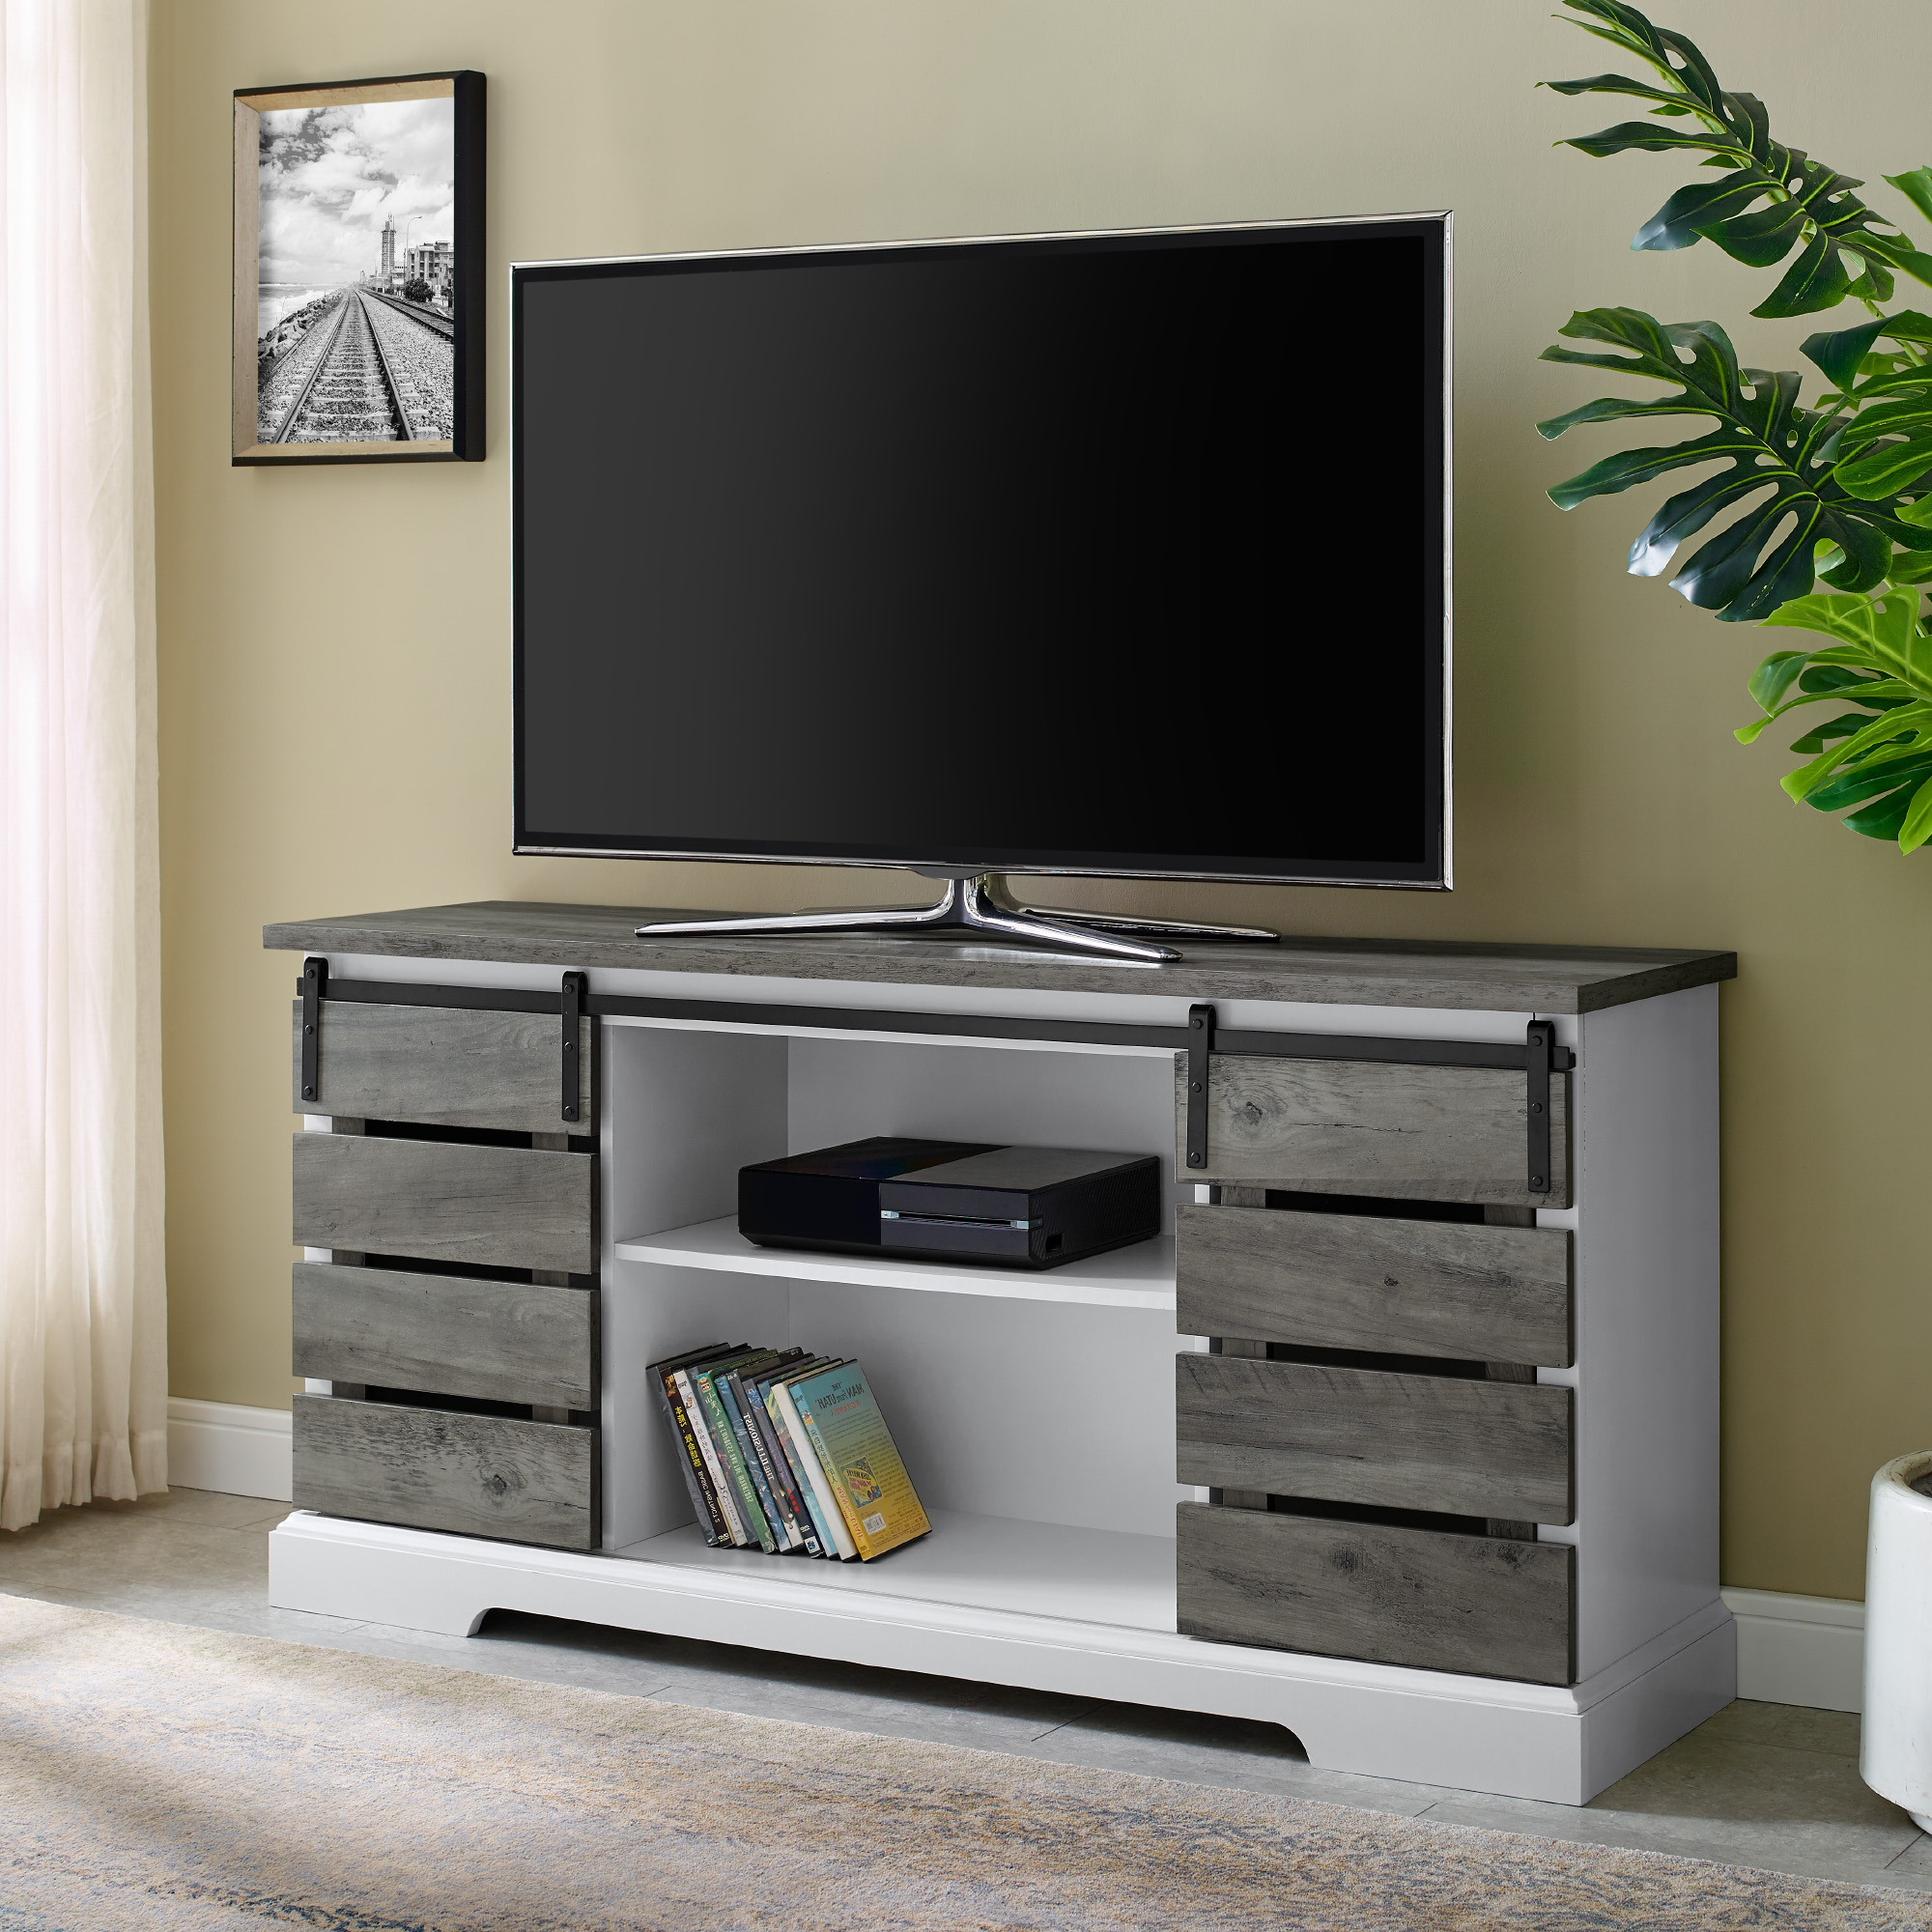 Most Recently Released Woven Paths Farmhouse Sliding Barn Door Tv Stands With Multiple Finishes Throughout Woven Paths Farmhouse Sliding Slat Door Tv Stand For Tvs (View 2 of 10)